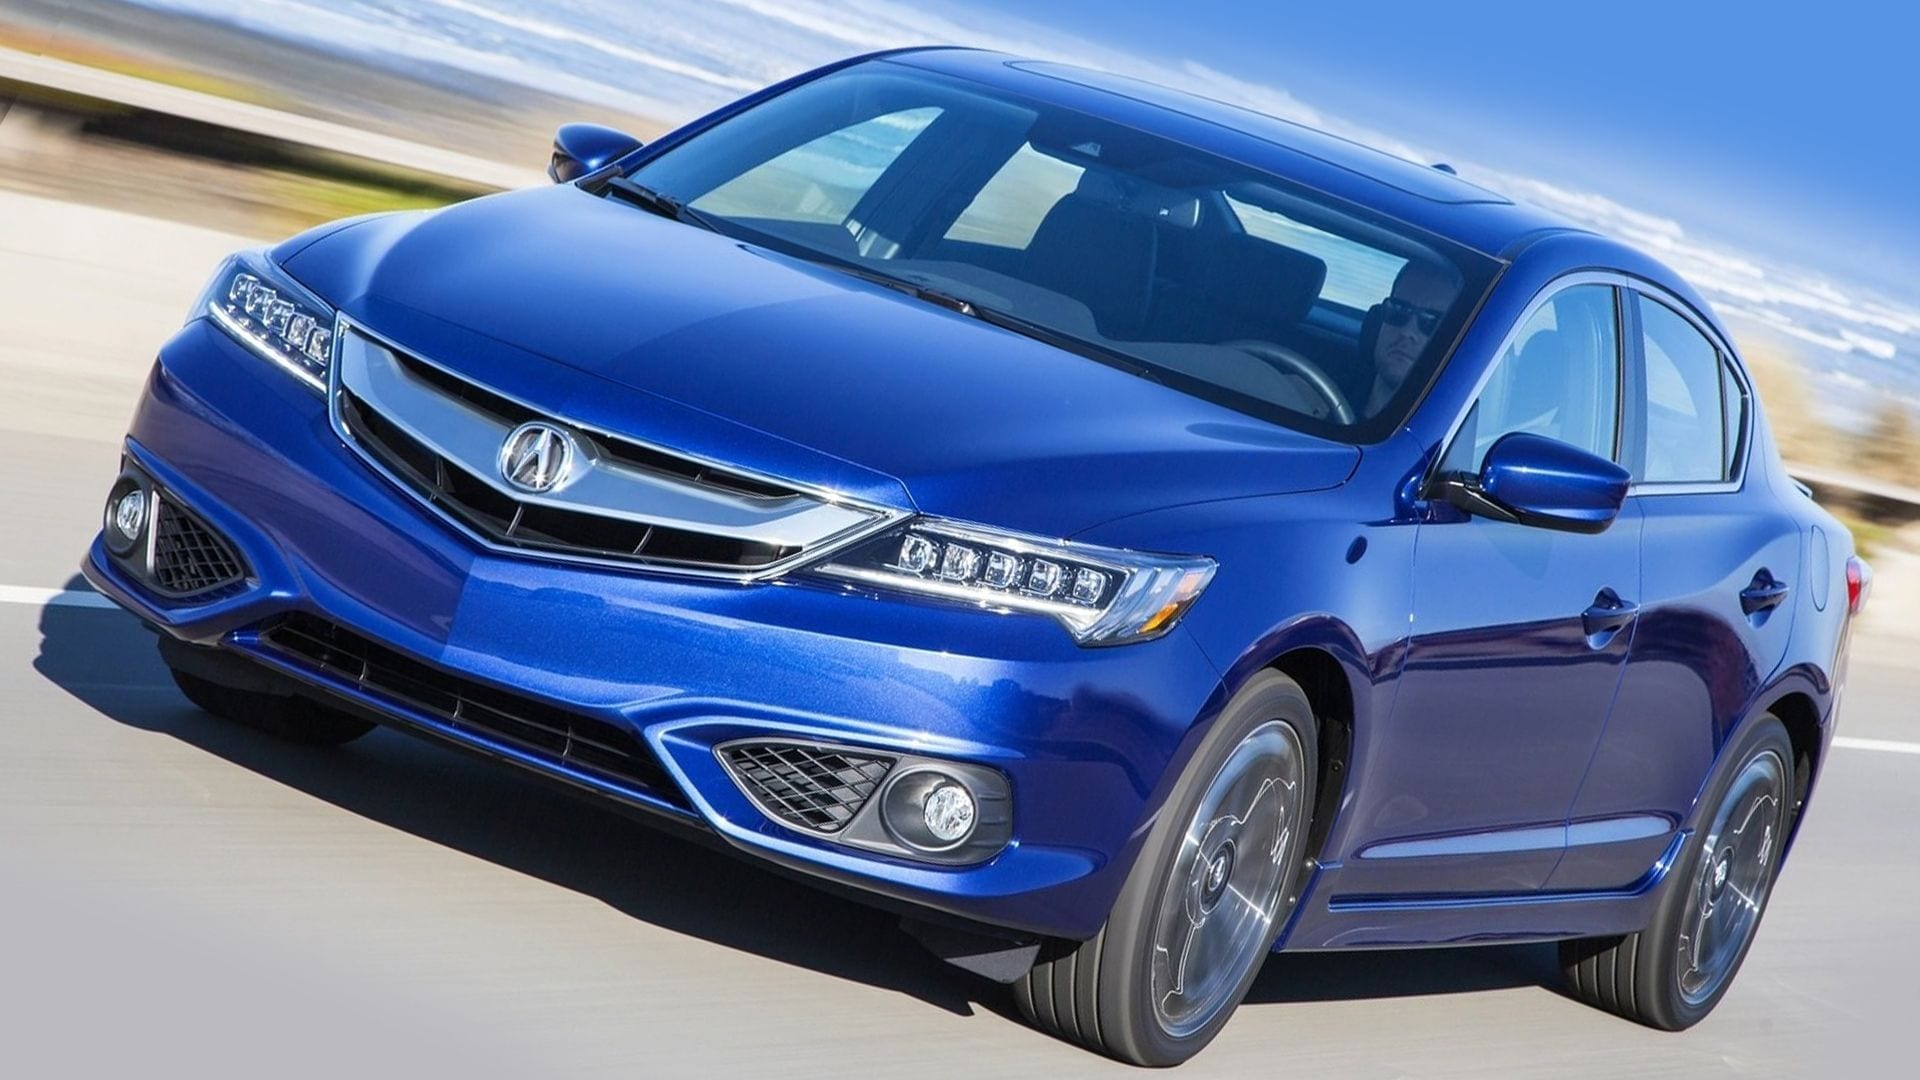 Acura ILX Sales Figures Canada GCBC - Acura ilx 2018 for sale